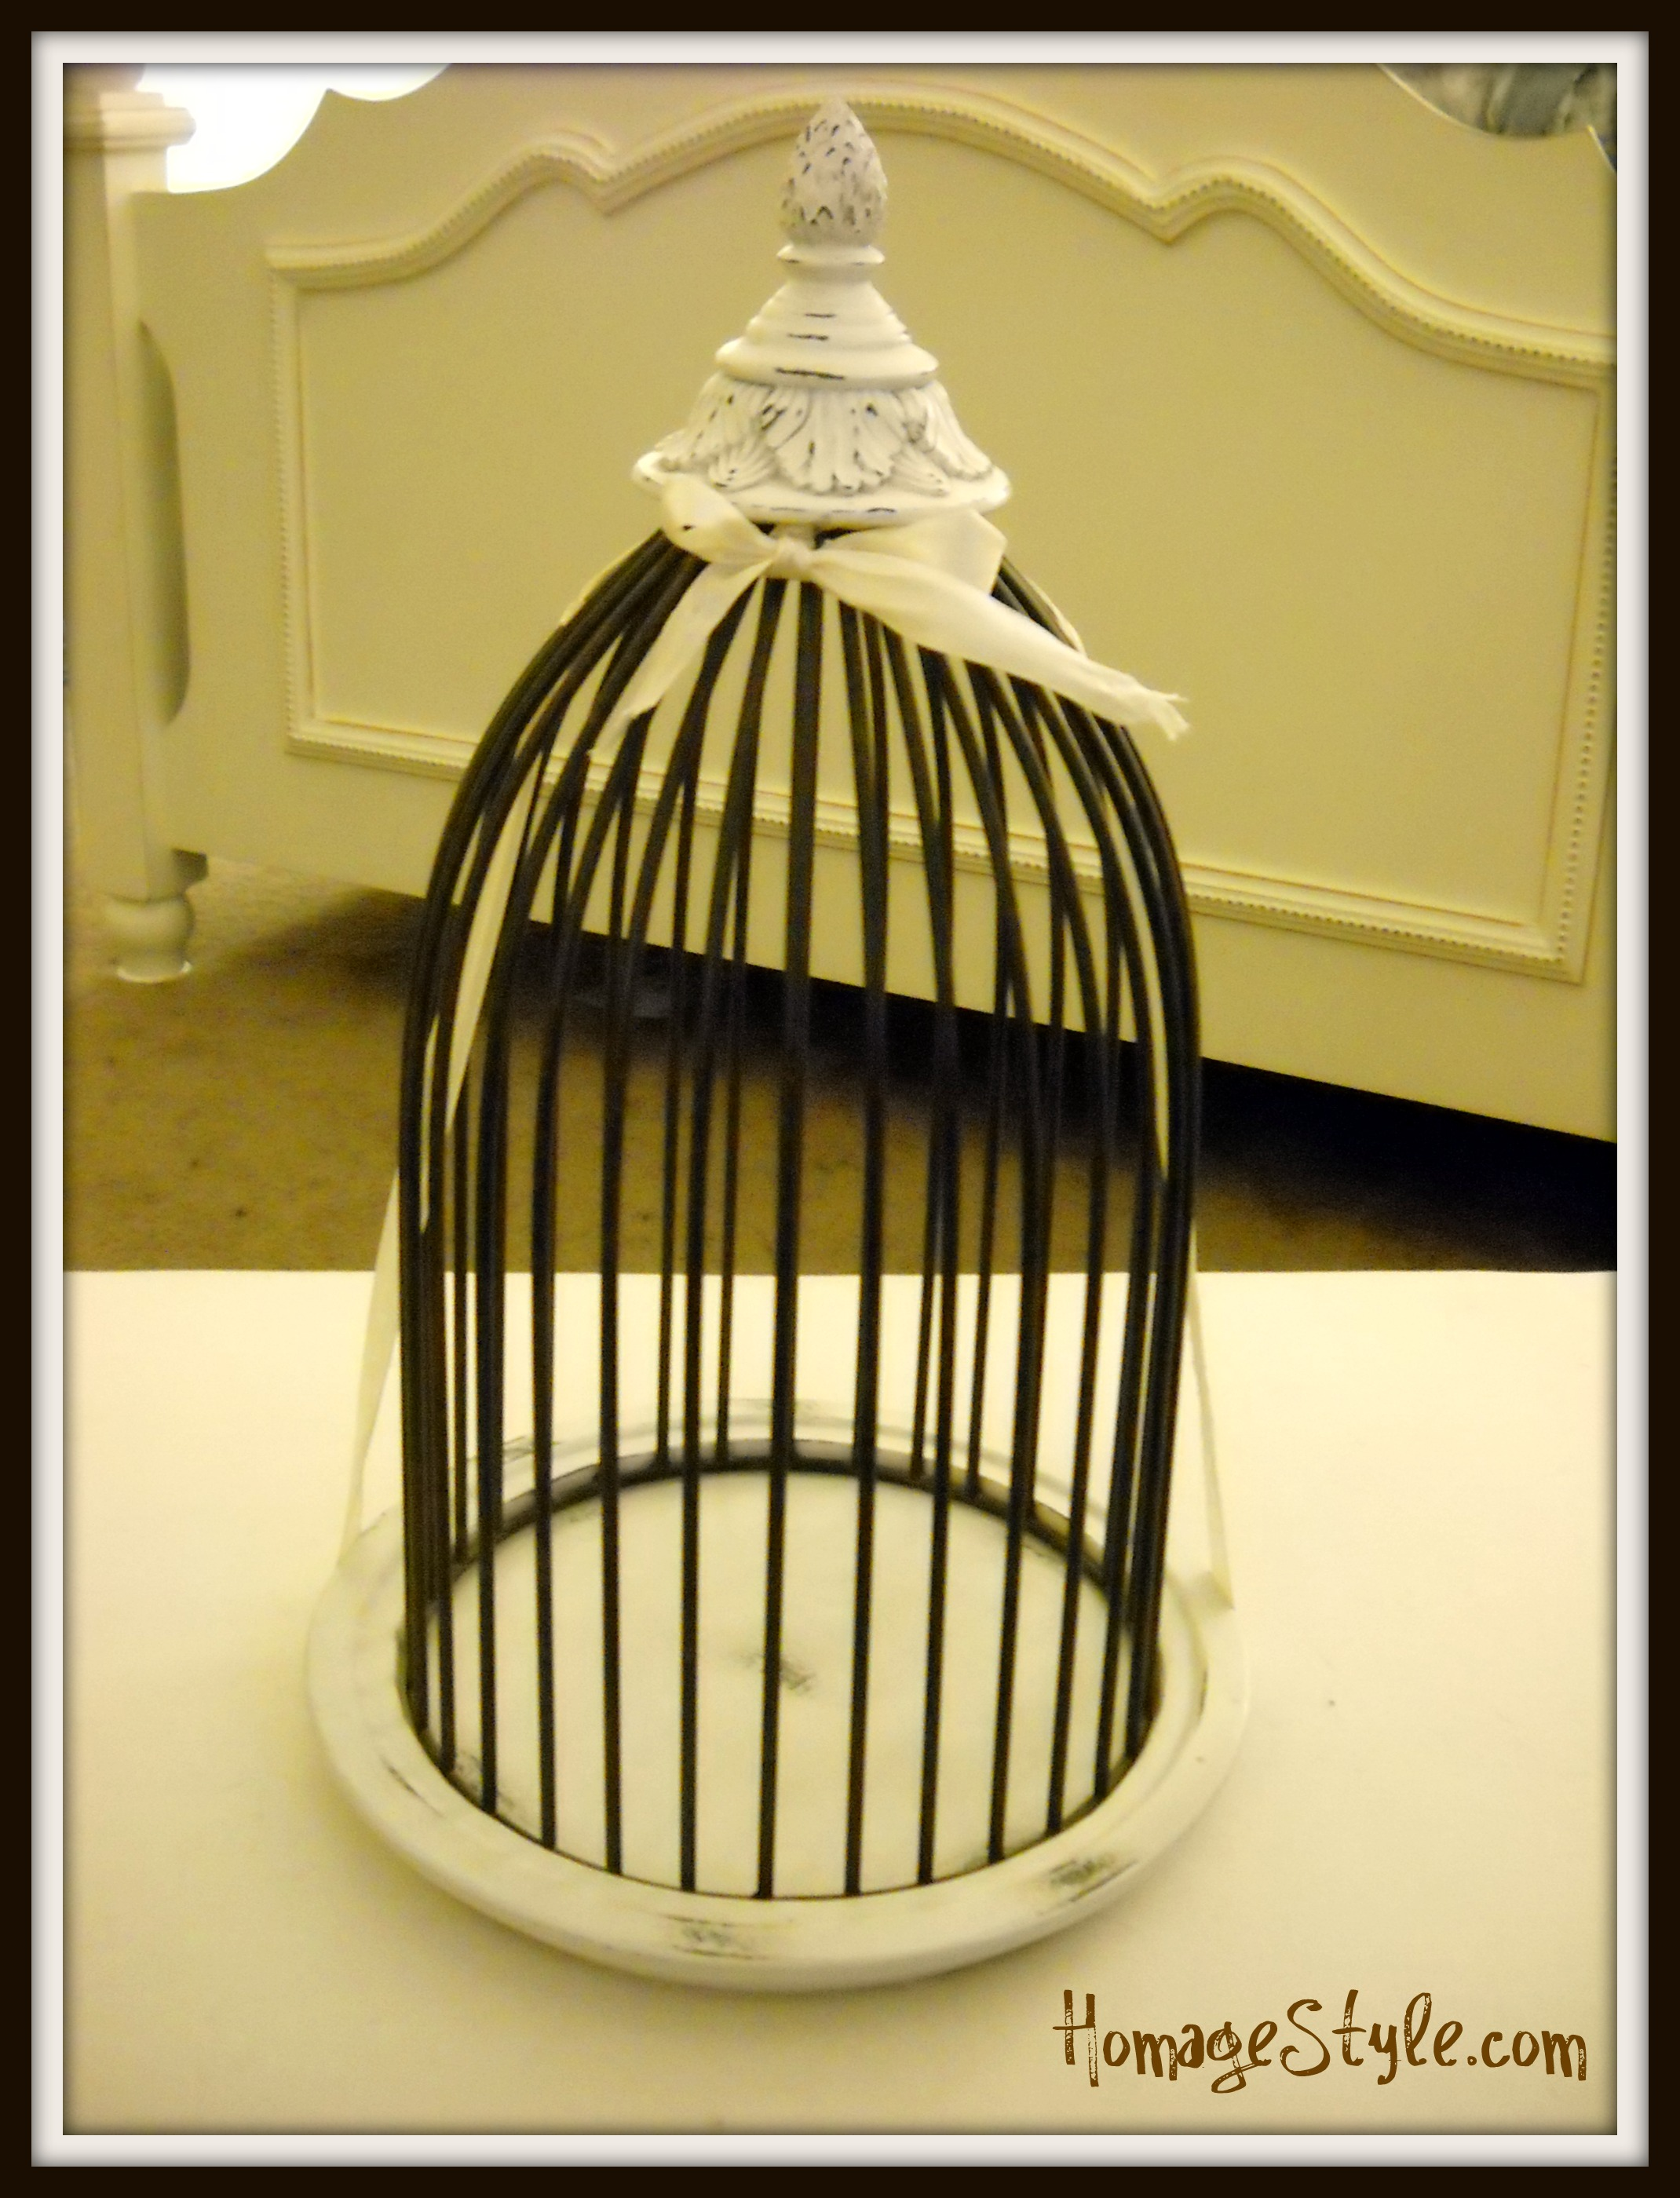 turn into so floor amazing mod lamp mess birdcage an easy beautiful stand a